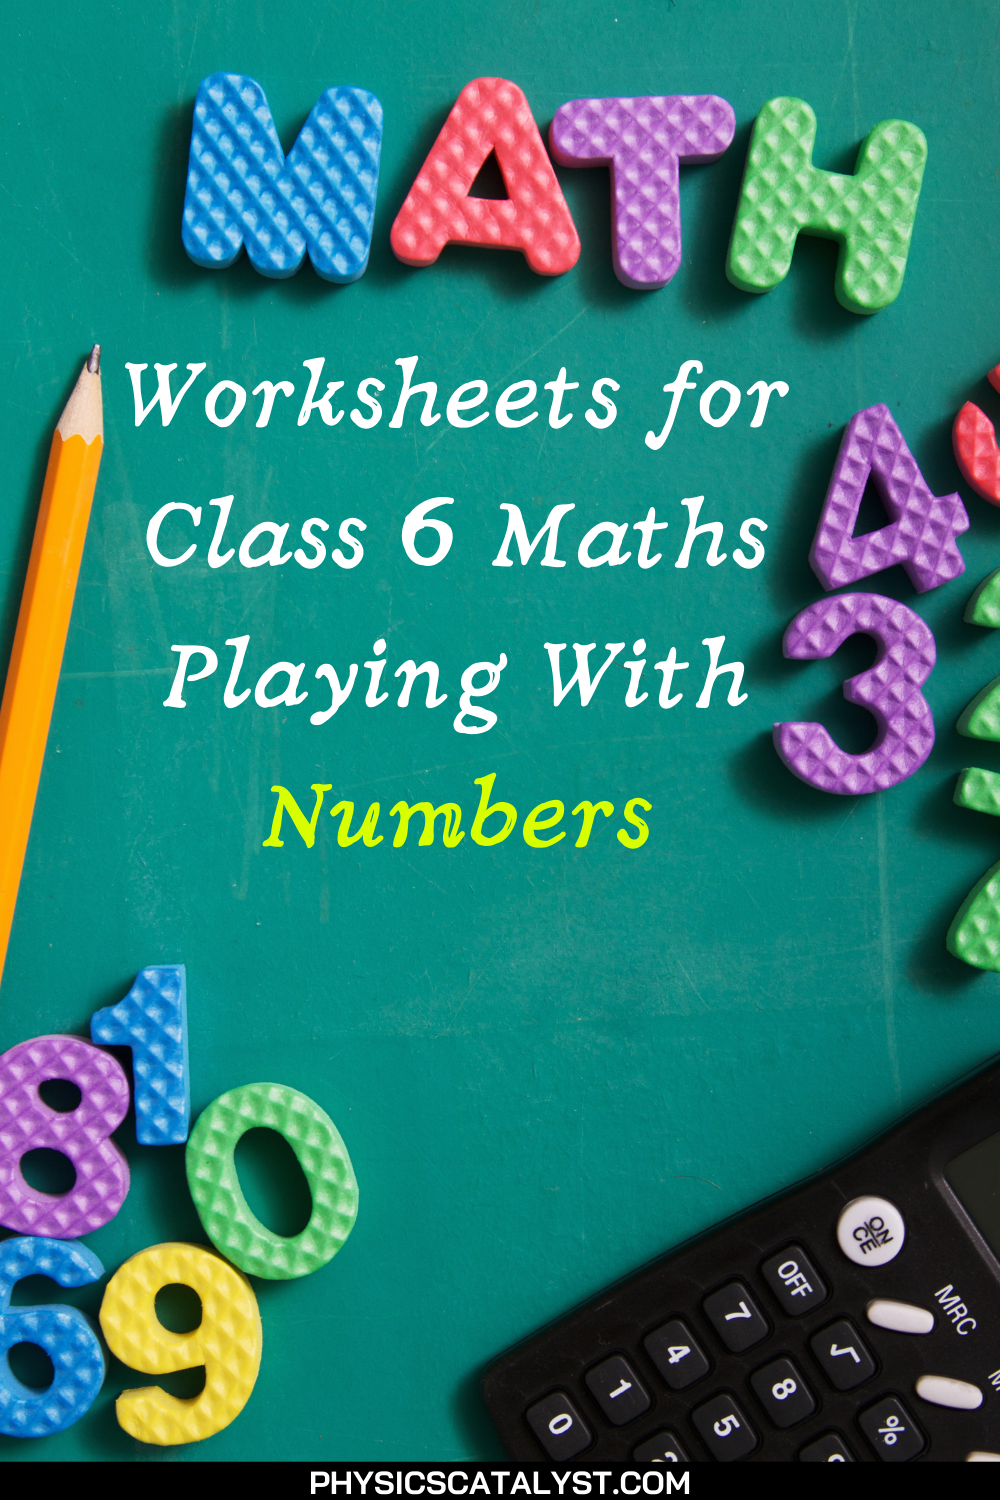 Playing With Numbers Worksheet Class 6 Maths Playing With Numbers Math [ 1500 x 1000 Pixel ]